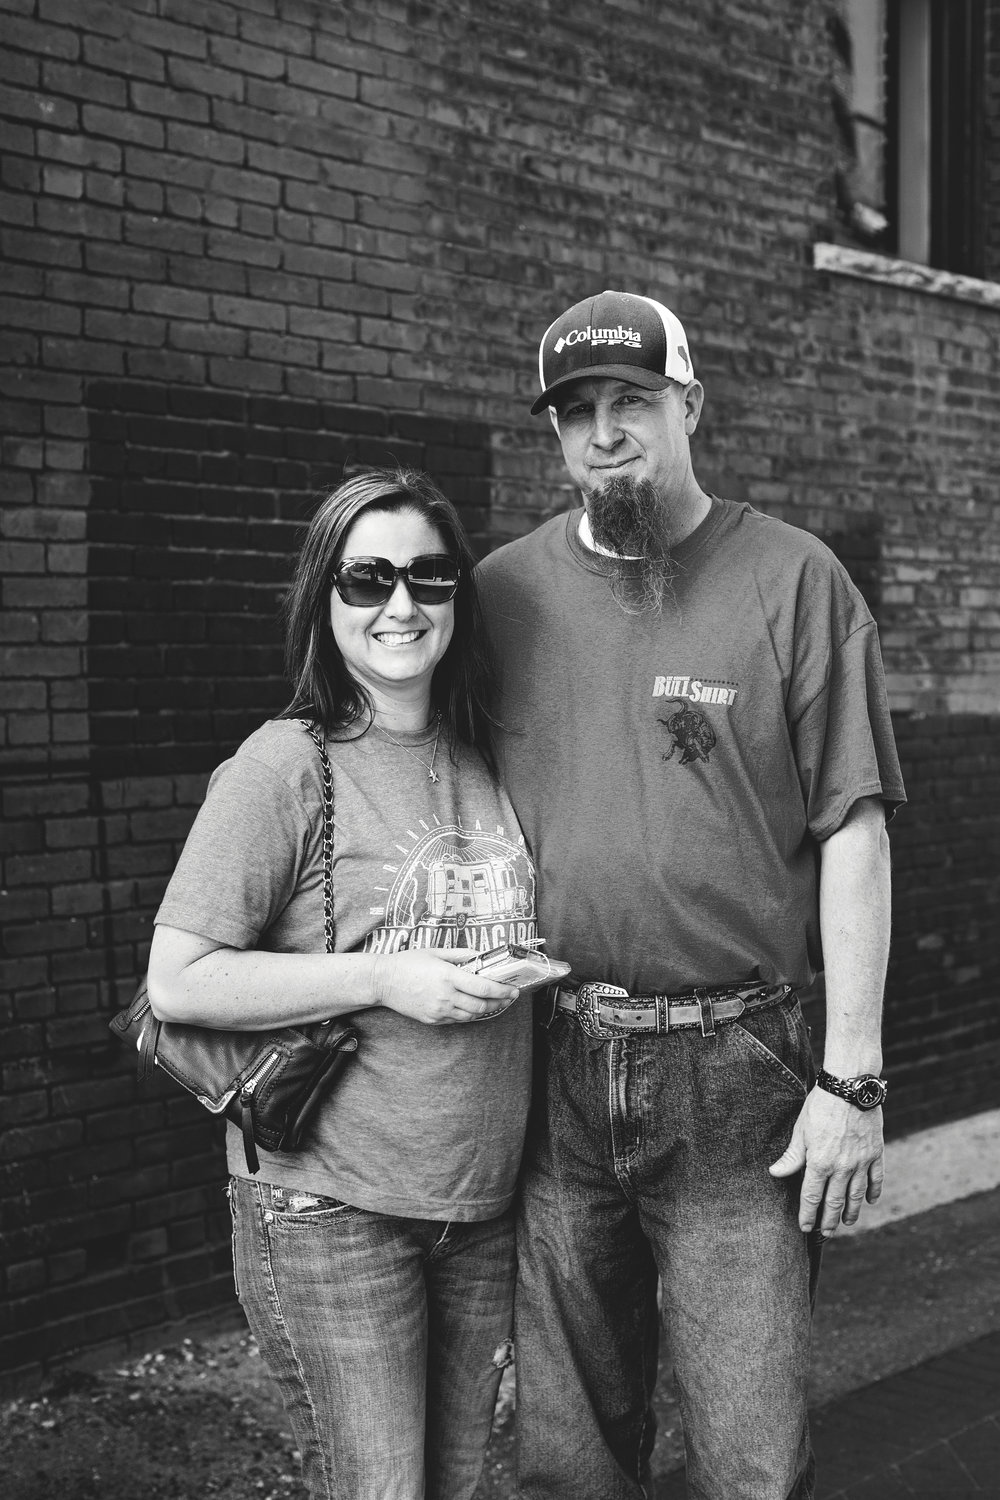 Marla K. and Andy M. - Came to downtown Springfield for the afternoon.